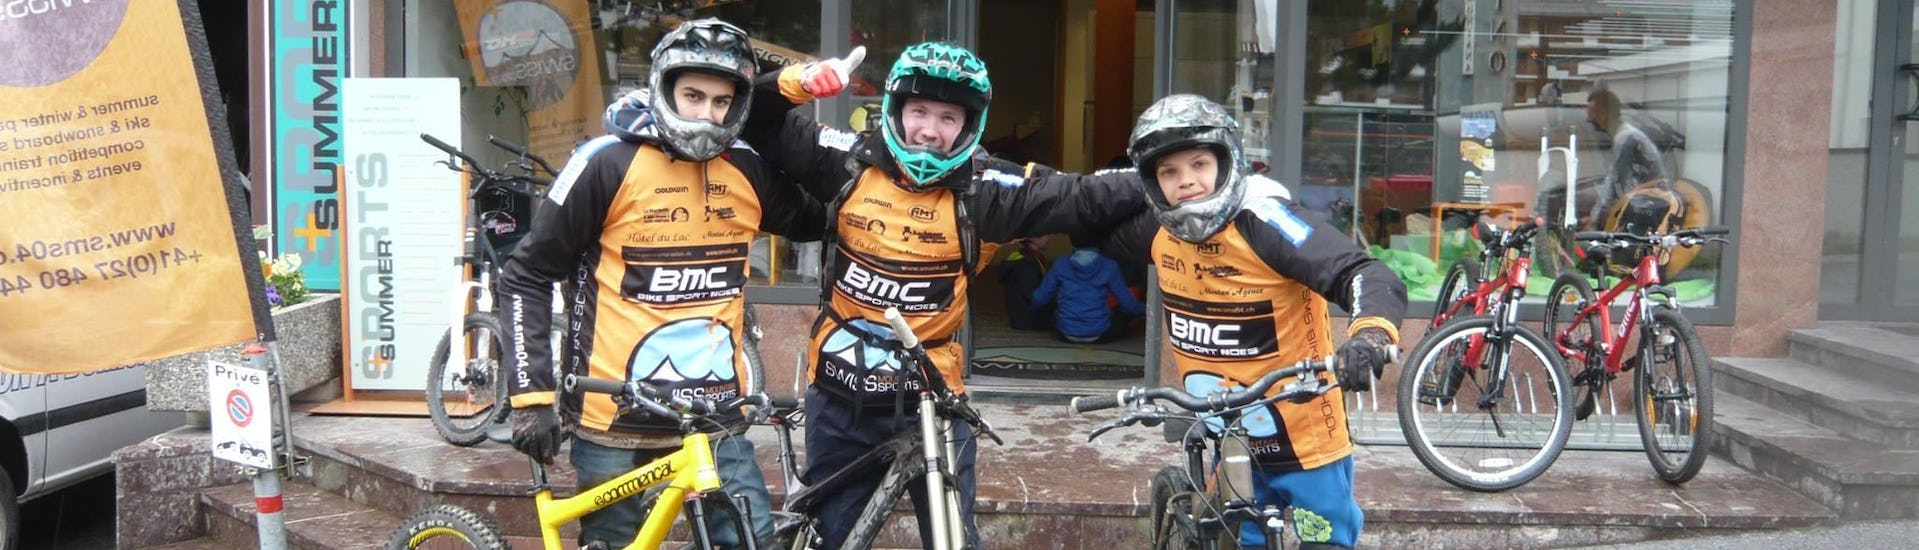 Downhill Biking Training for Kids & Adults - All Levels